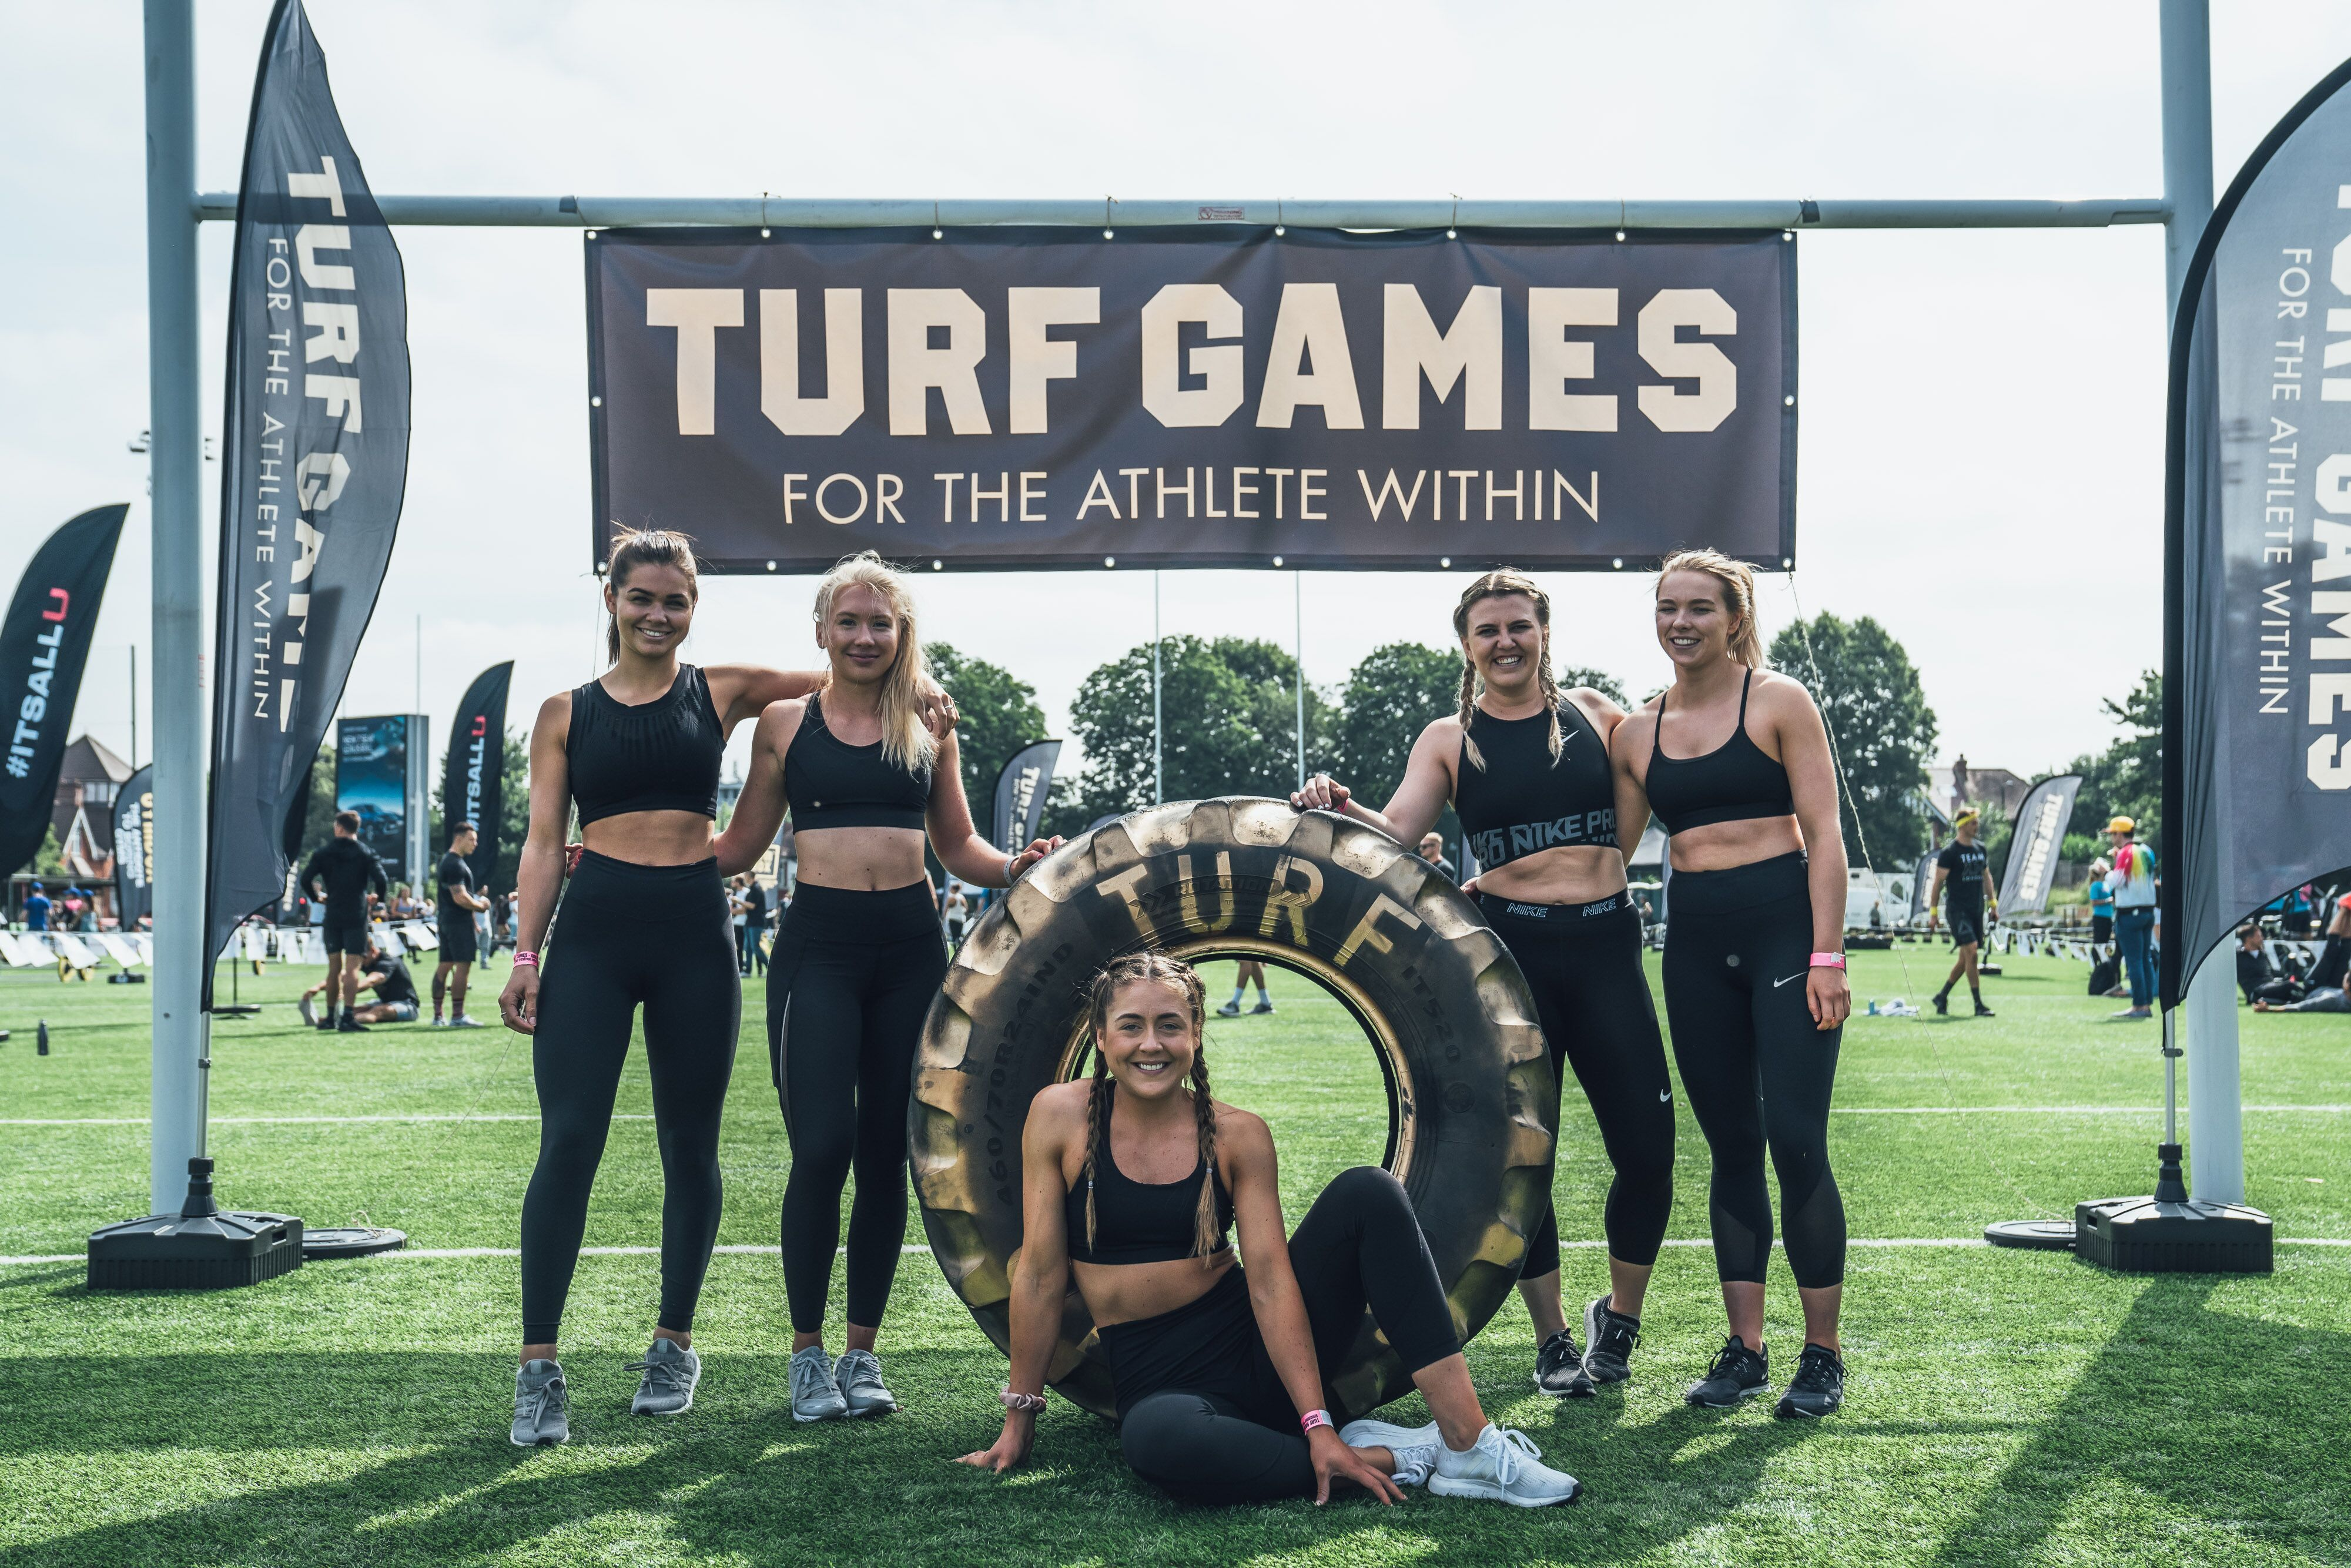 50% off Spectator Tickets to the Under Armour Turf Games for Women Health Readers